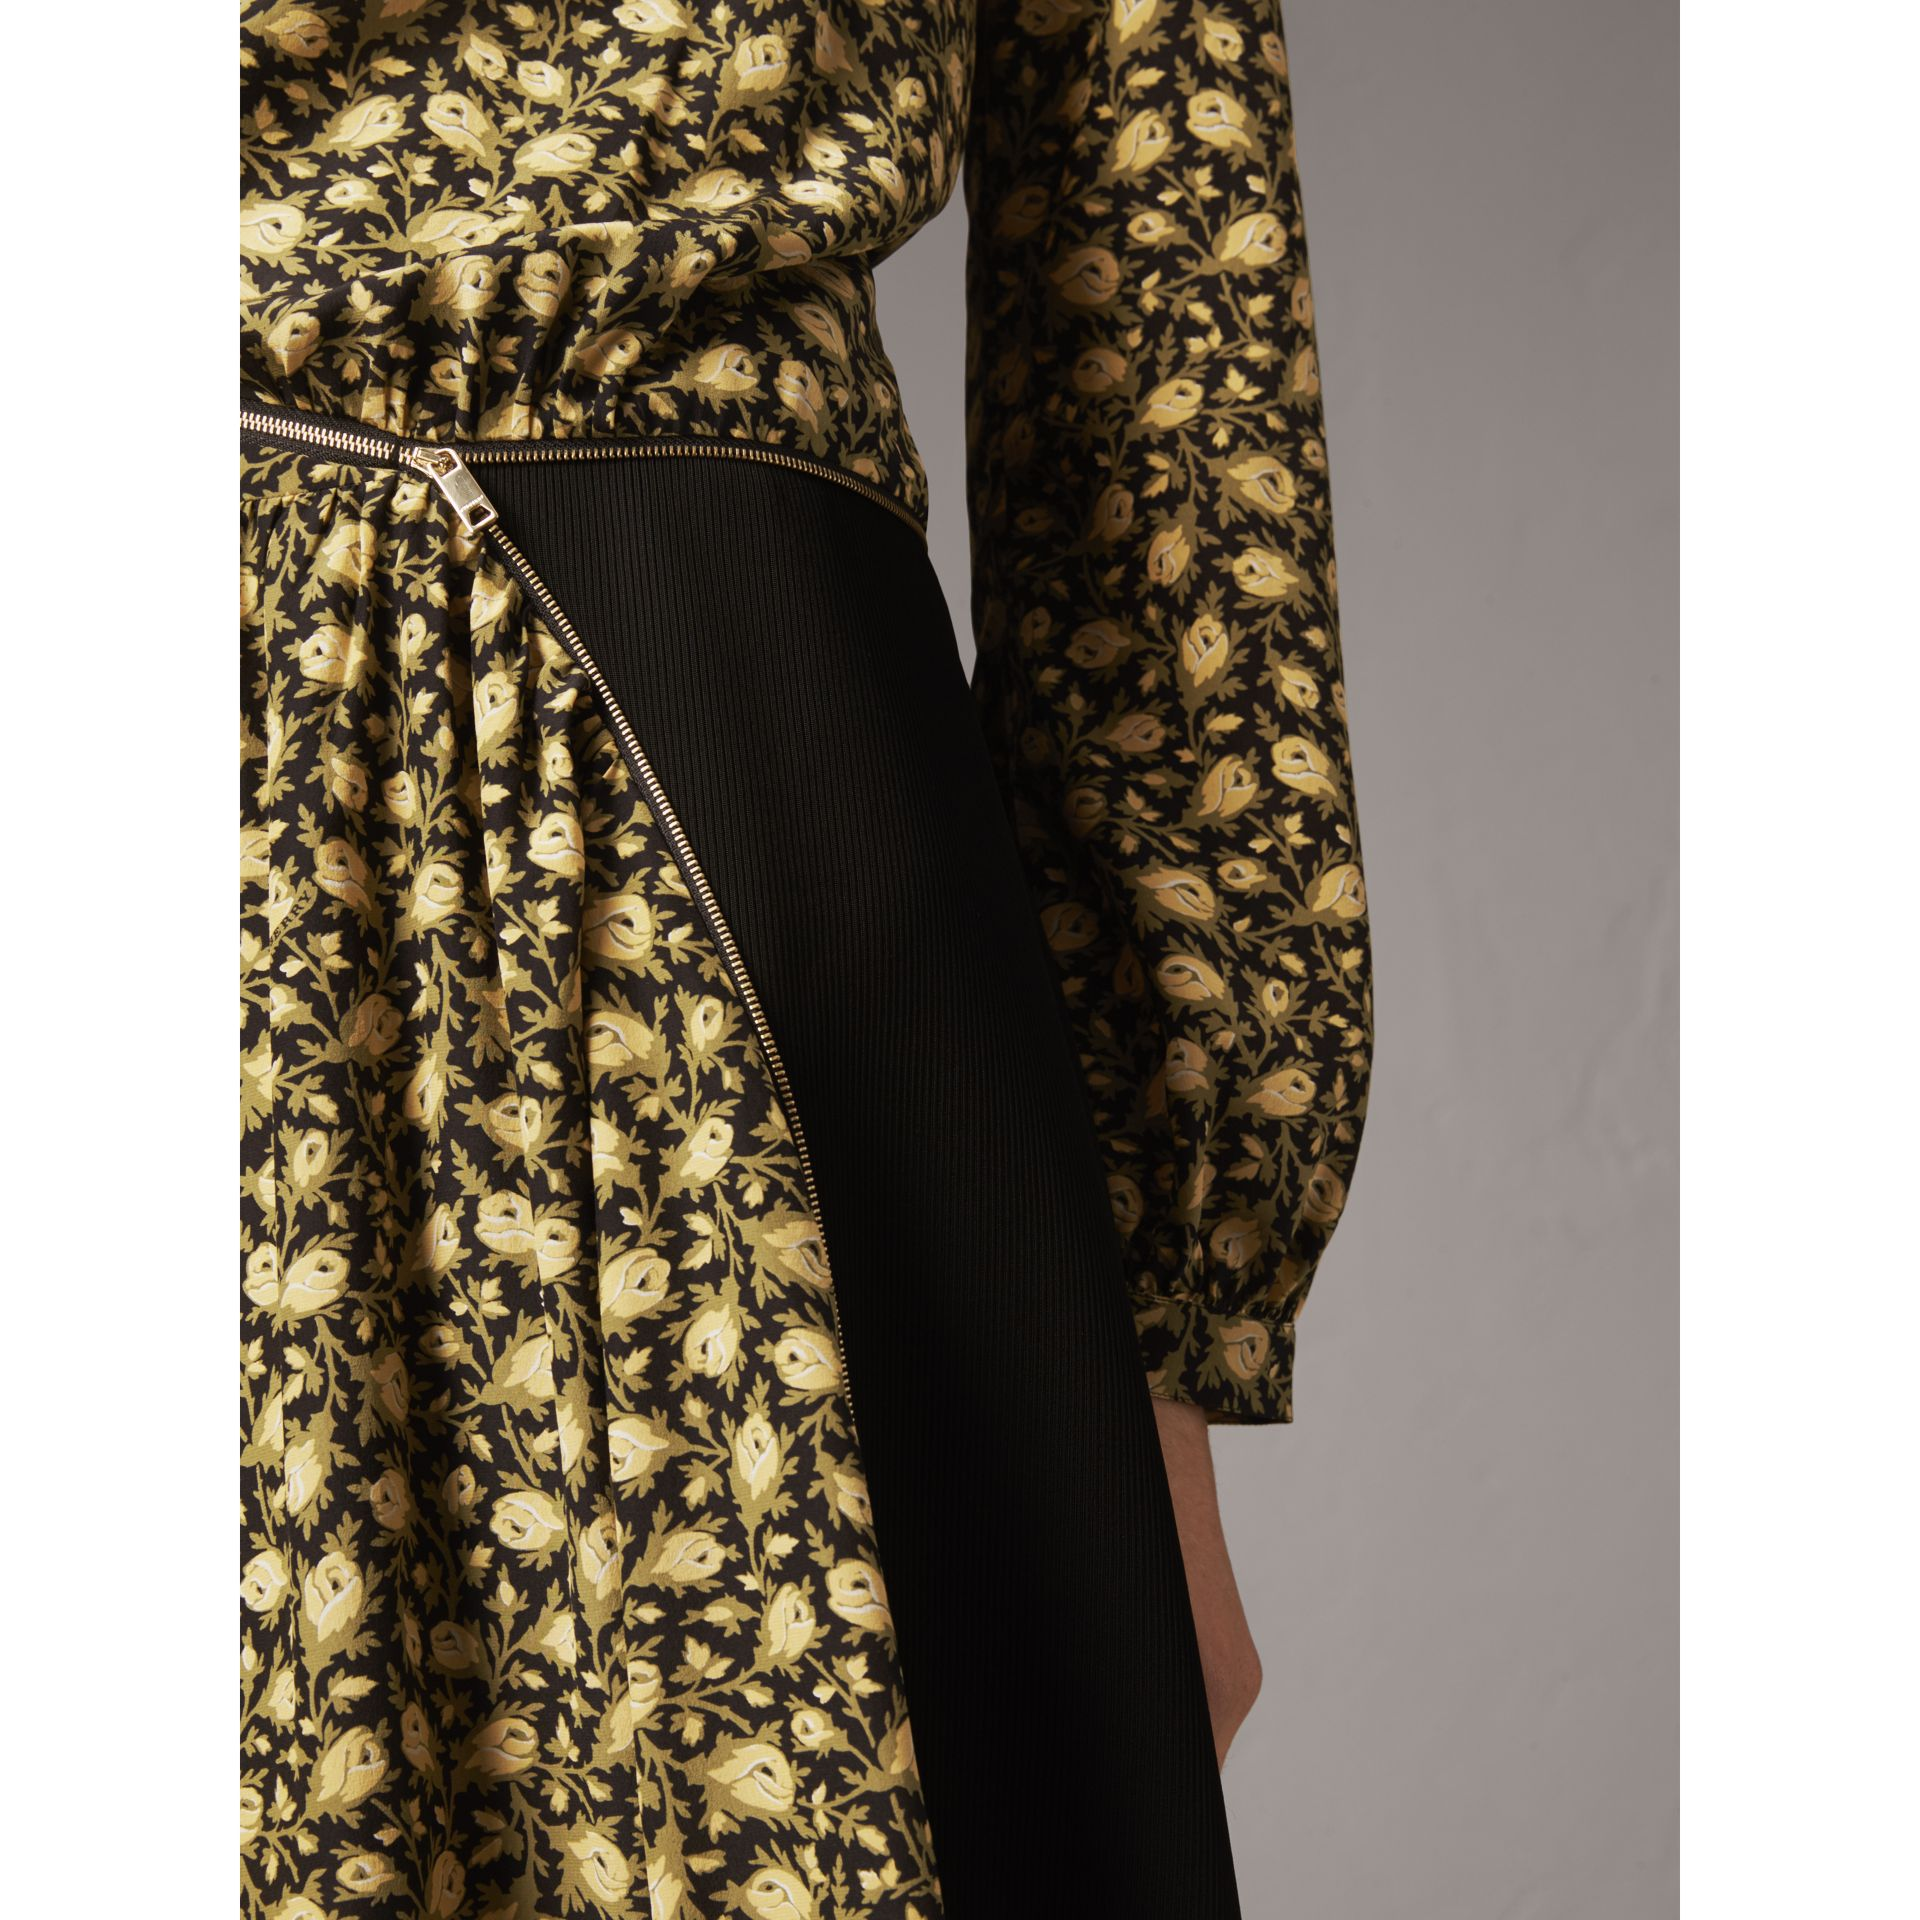 Zip Detail Floral Silk Dress in Pale Saffron Yellow - Women | Burberry - gallery image 2